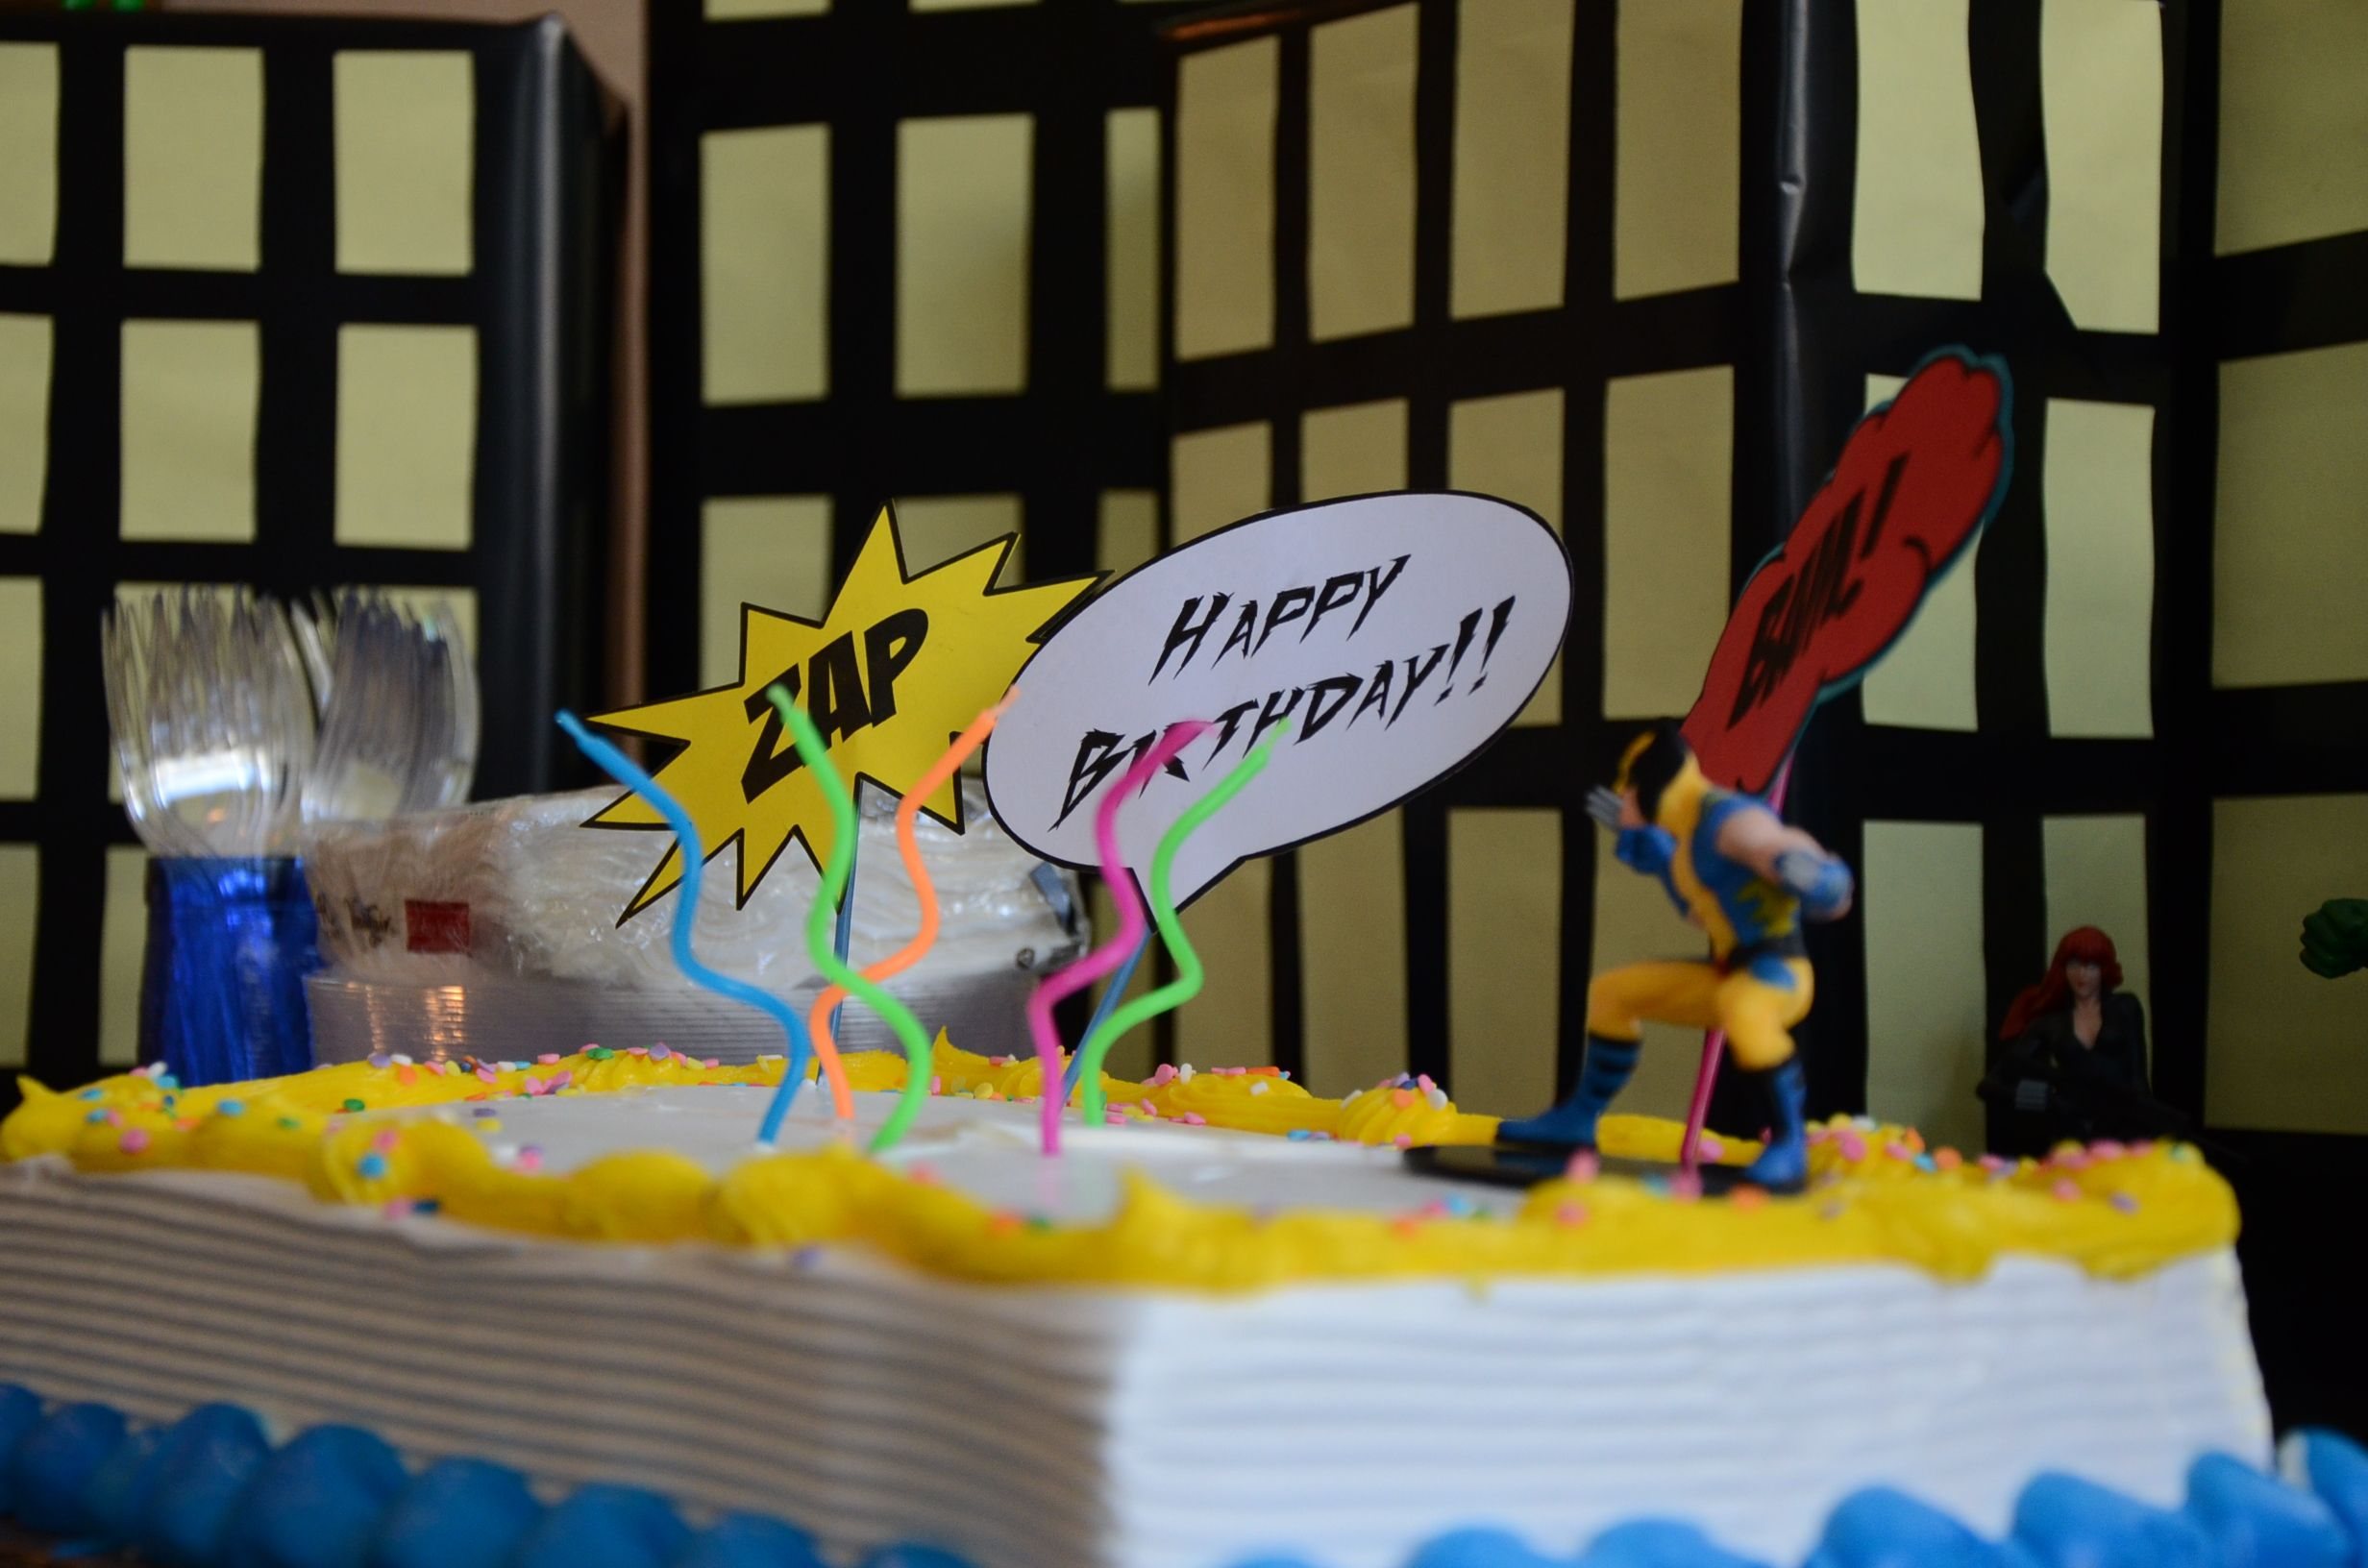 Have a handmade birthday party at The Tinderbox